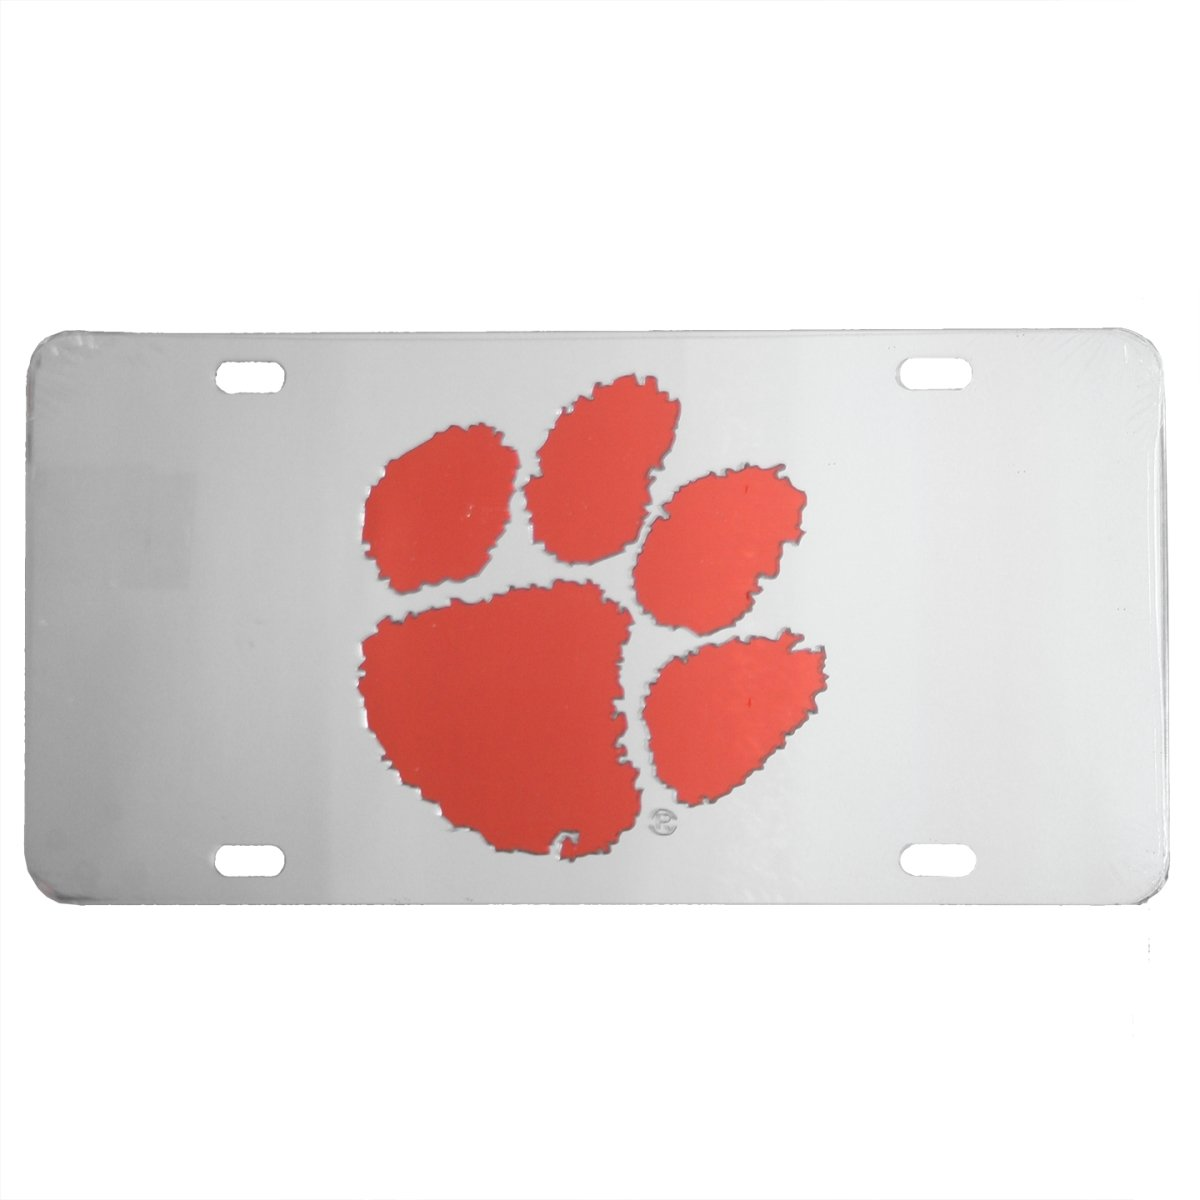 Car Tag Laser Cut Silver With Orange Paw - Mr. Knickerbocker